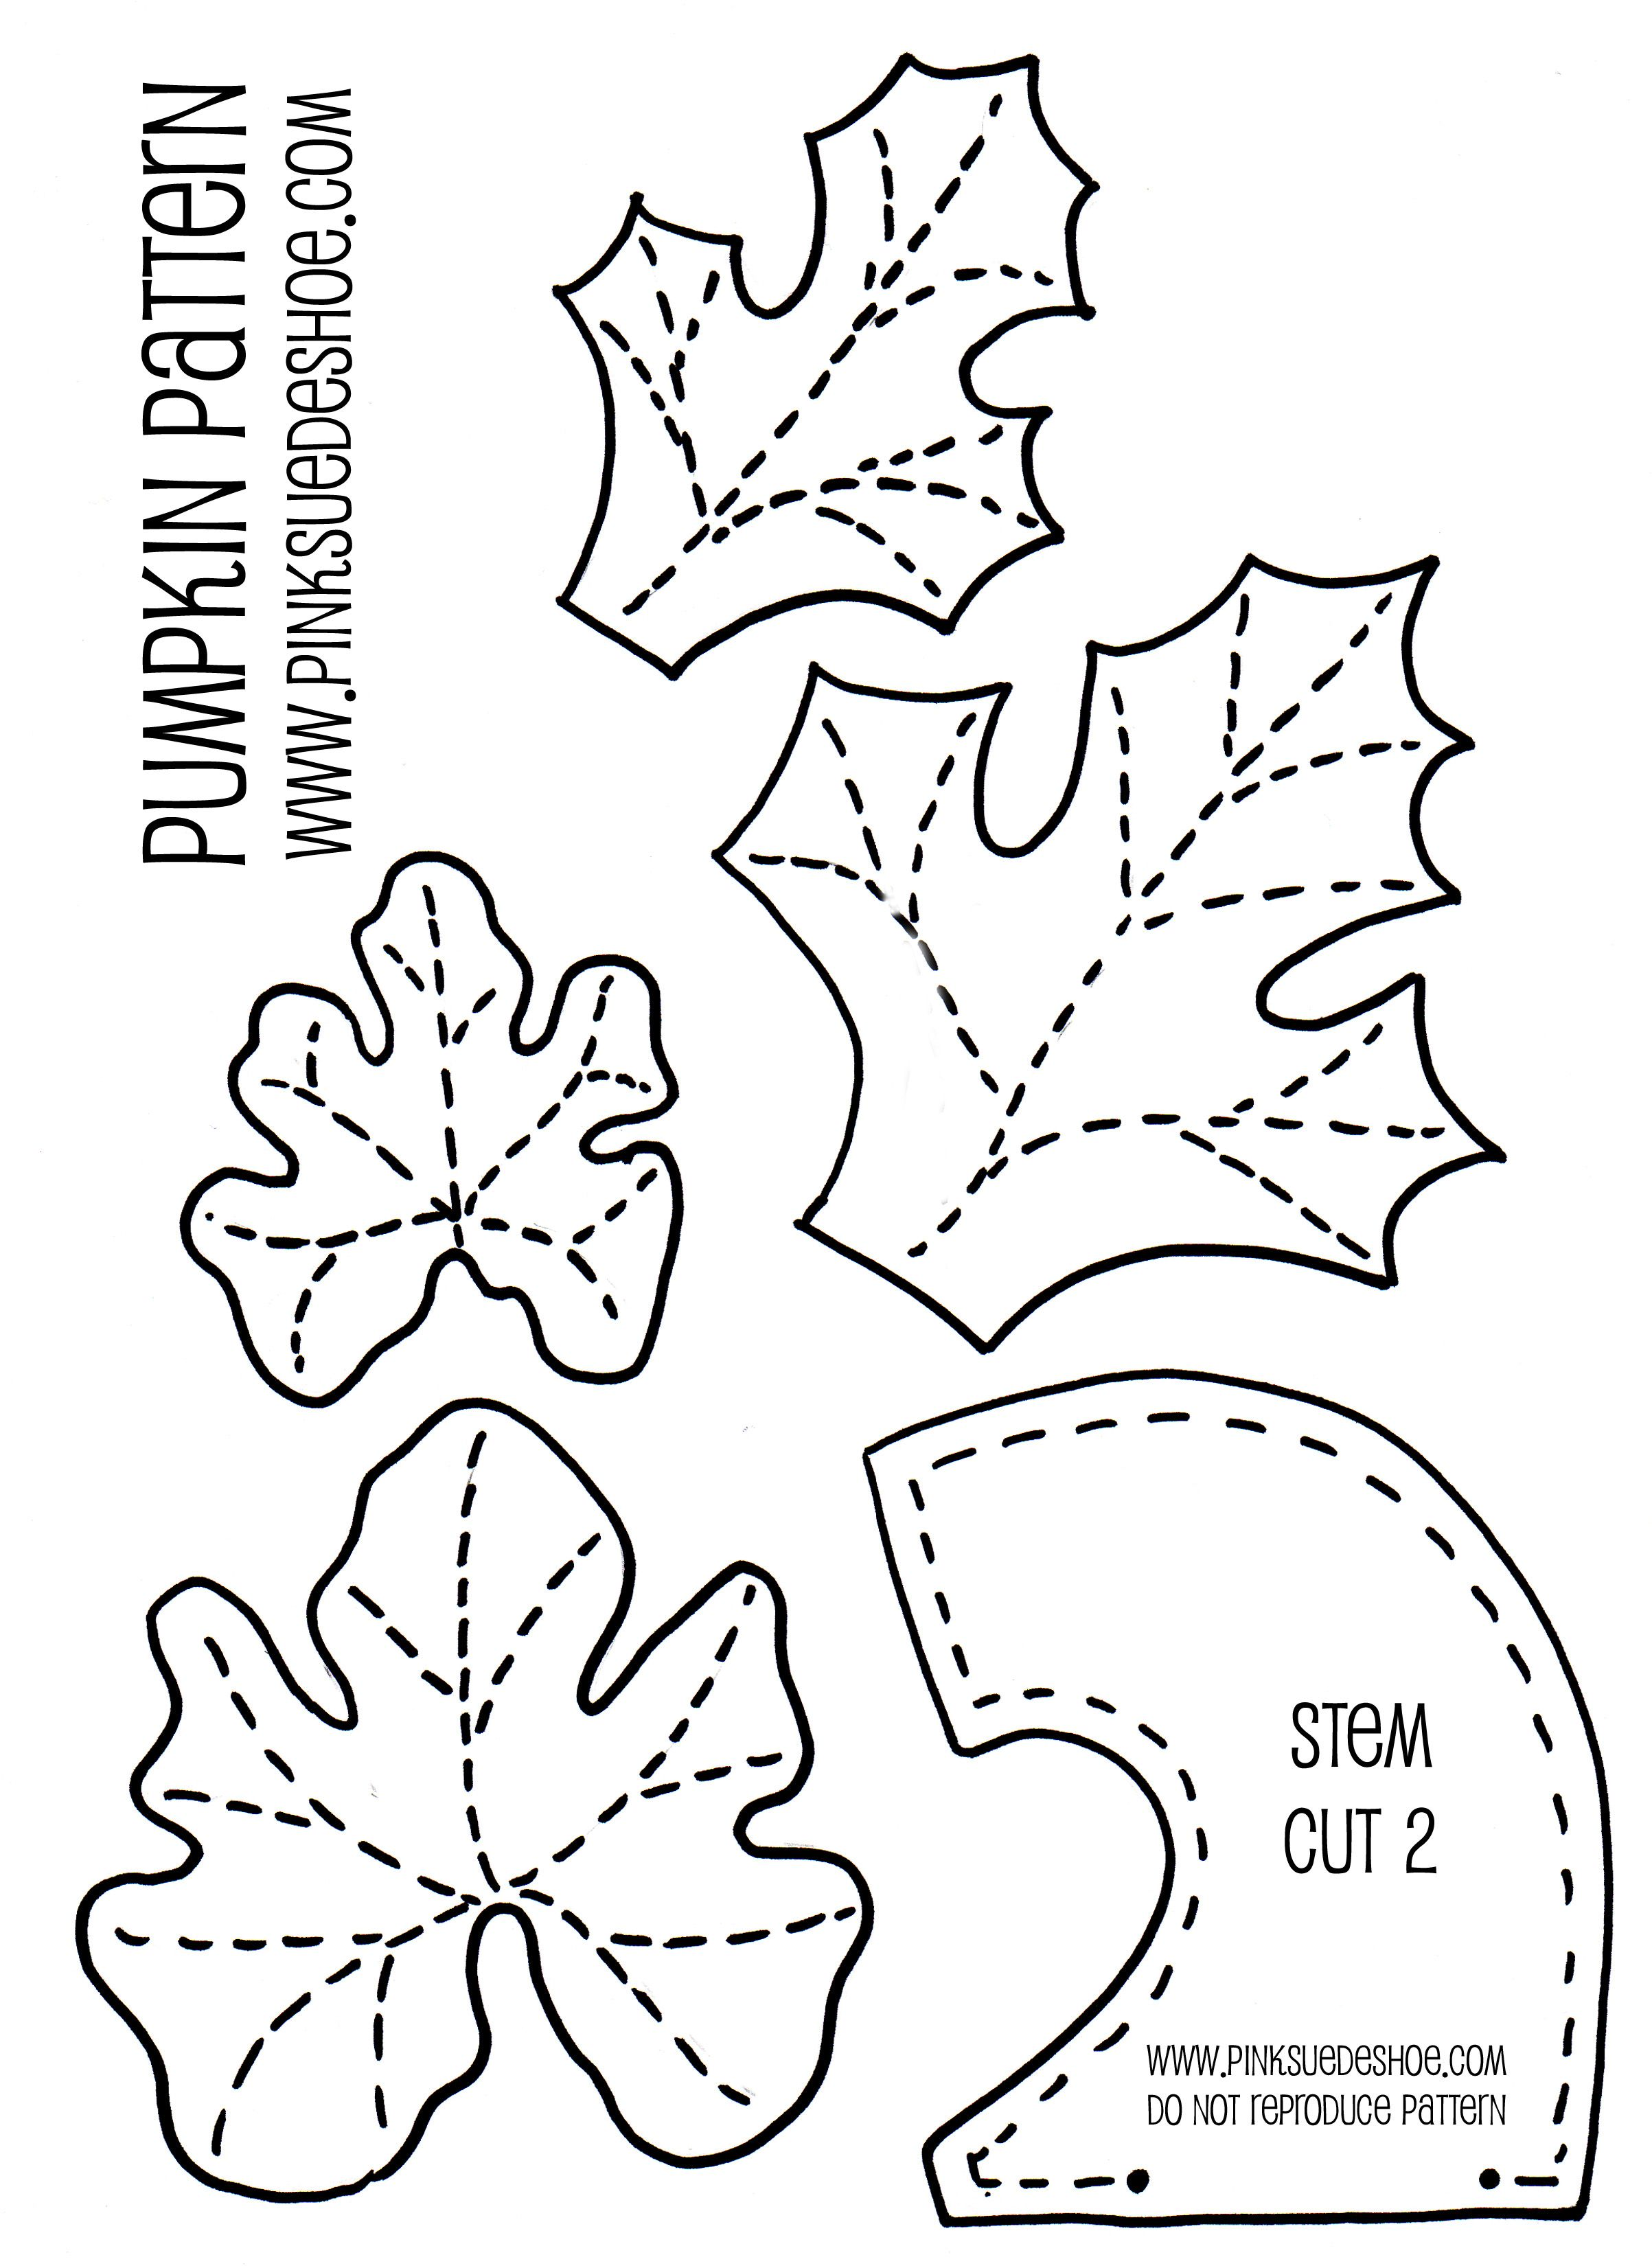 leaves-and-stems.jpg OOooo to go with the pumpkin pattern